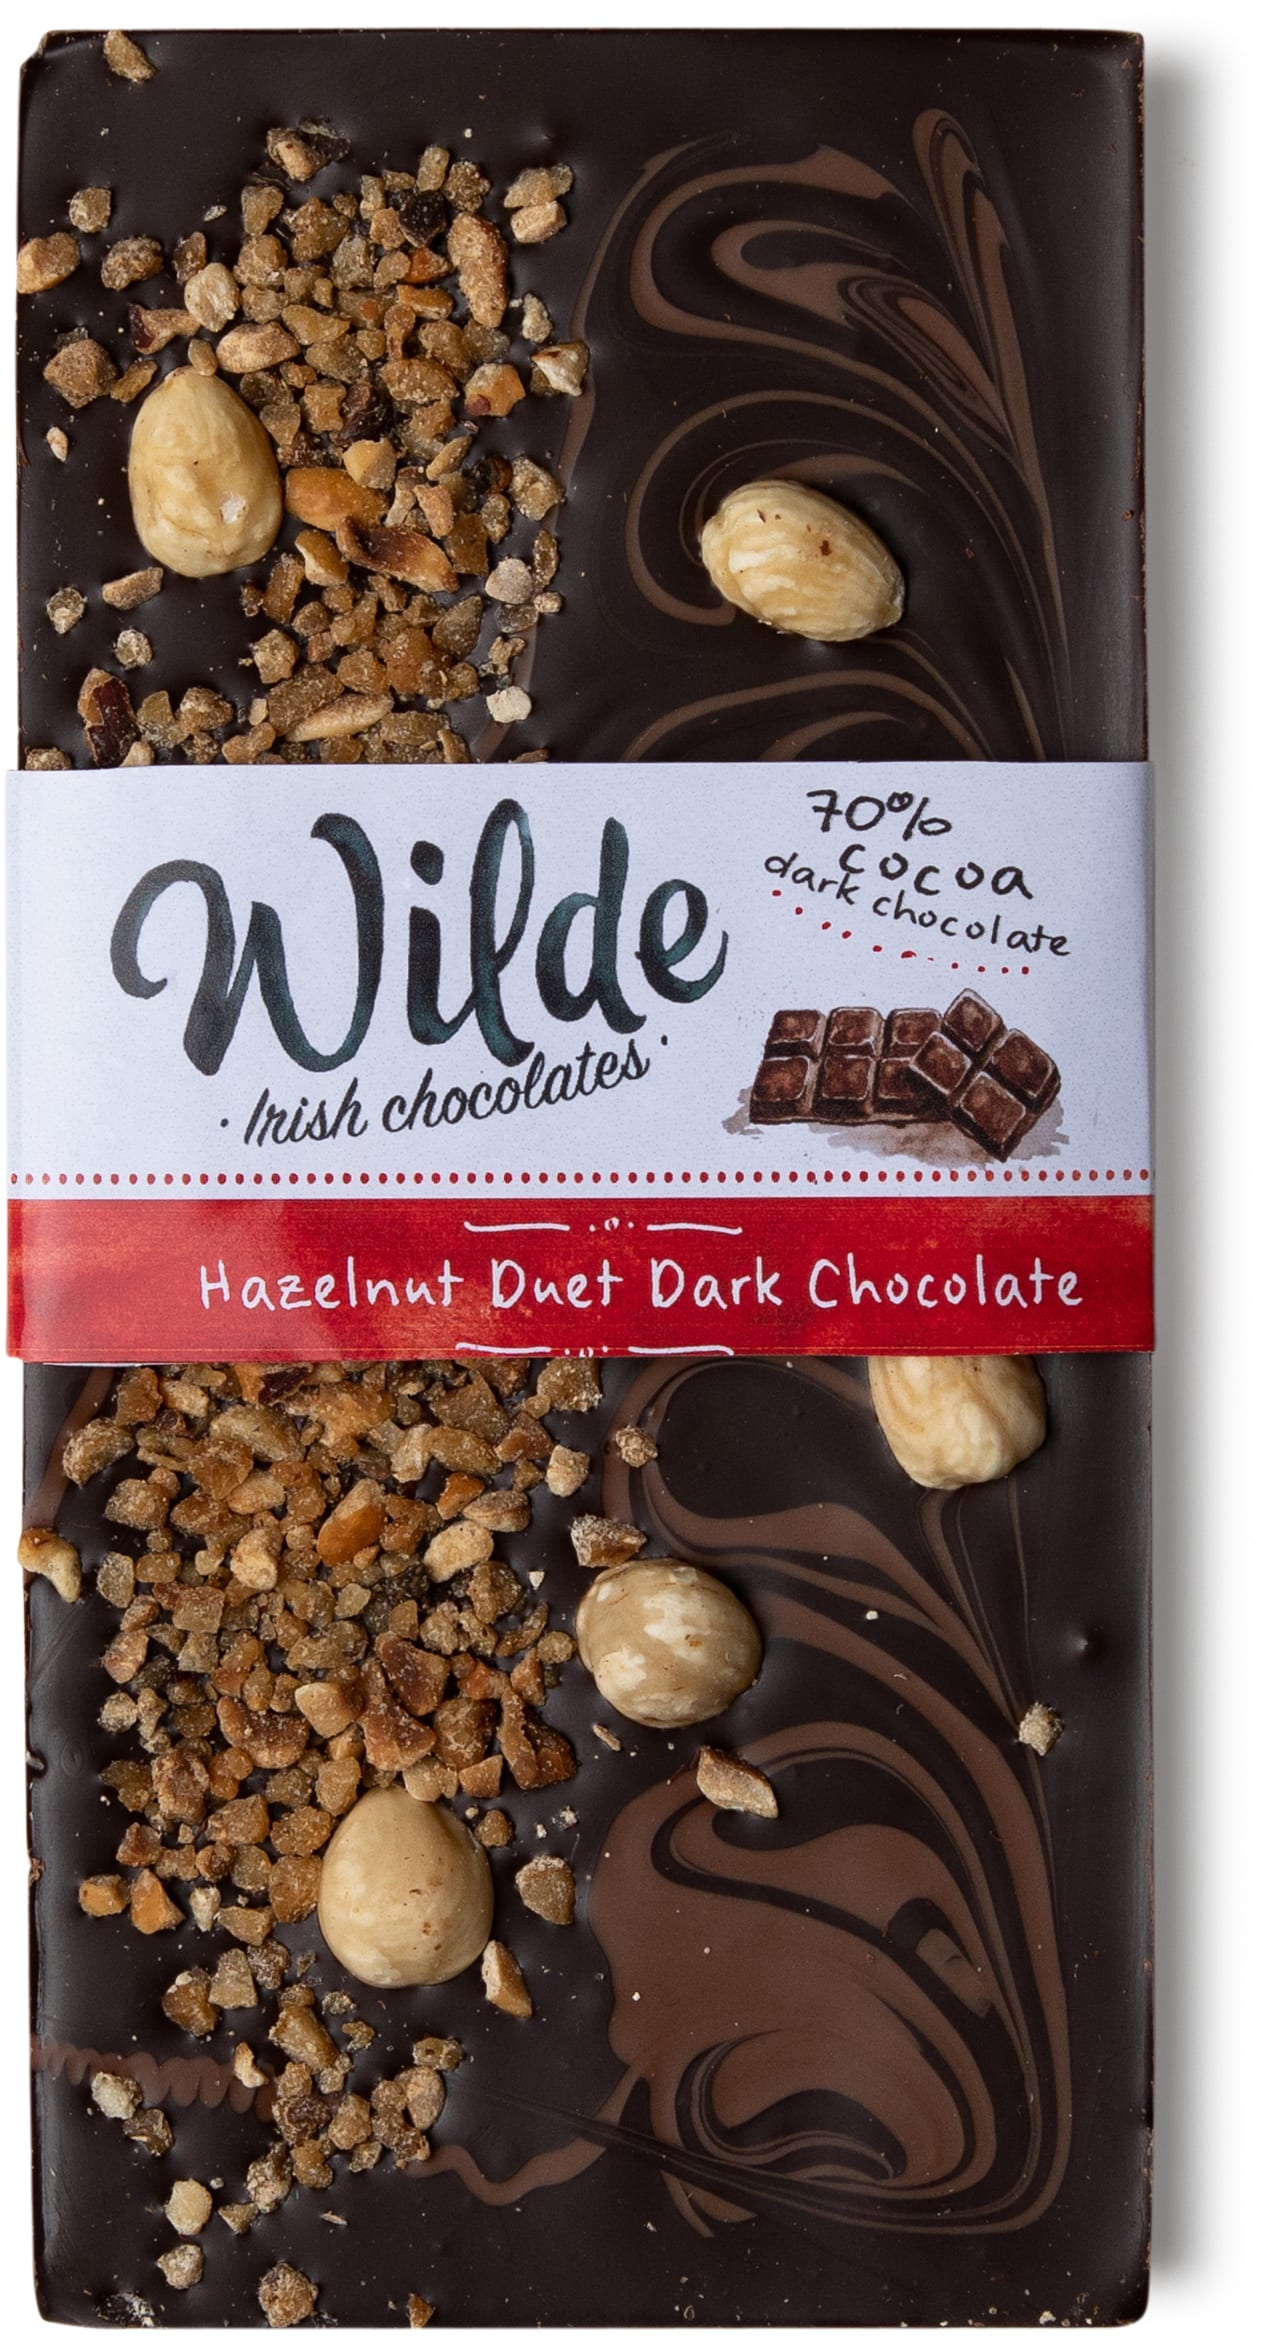 hazelnut duet Dark chocolate bar - Wilde Irish Chocolates